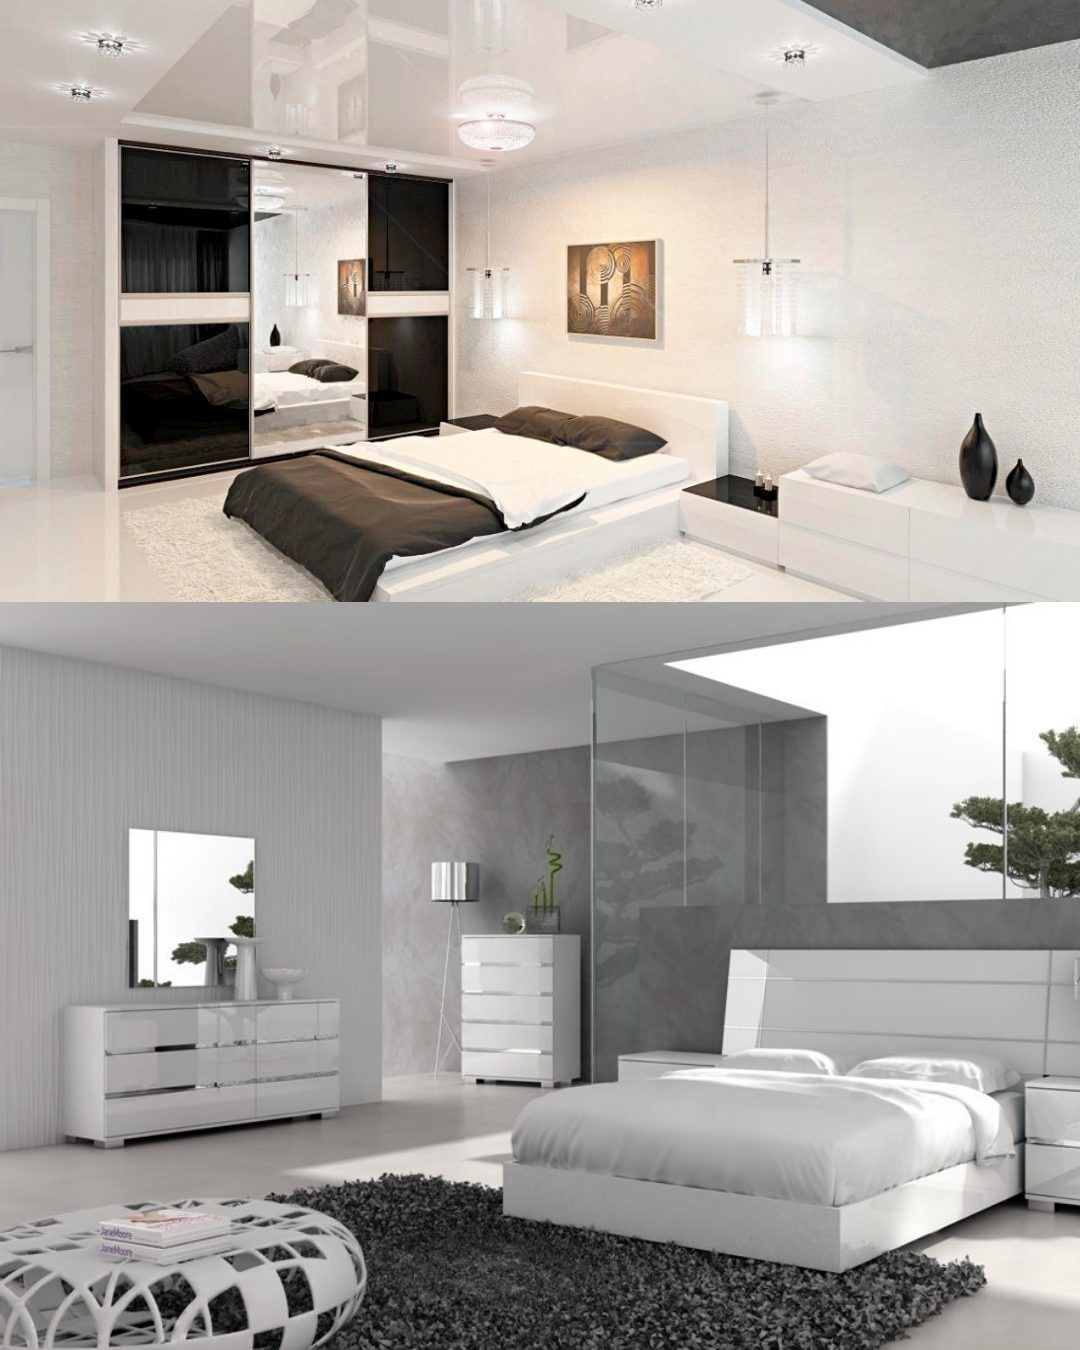 Cozy Bedroom Ideas For Couples In 2020 Modern Contemporary